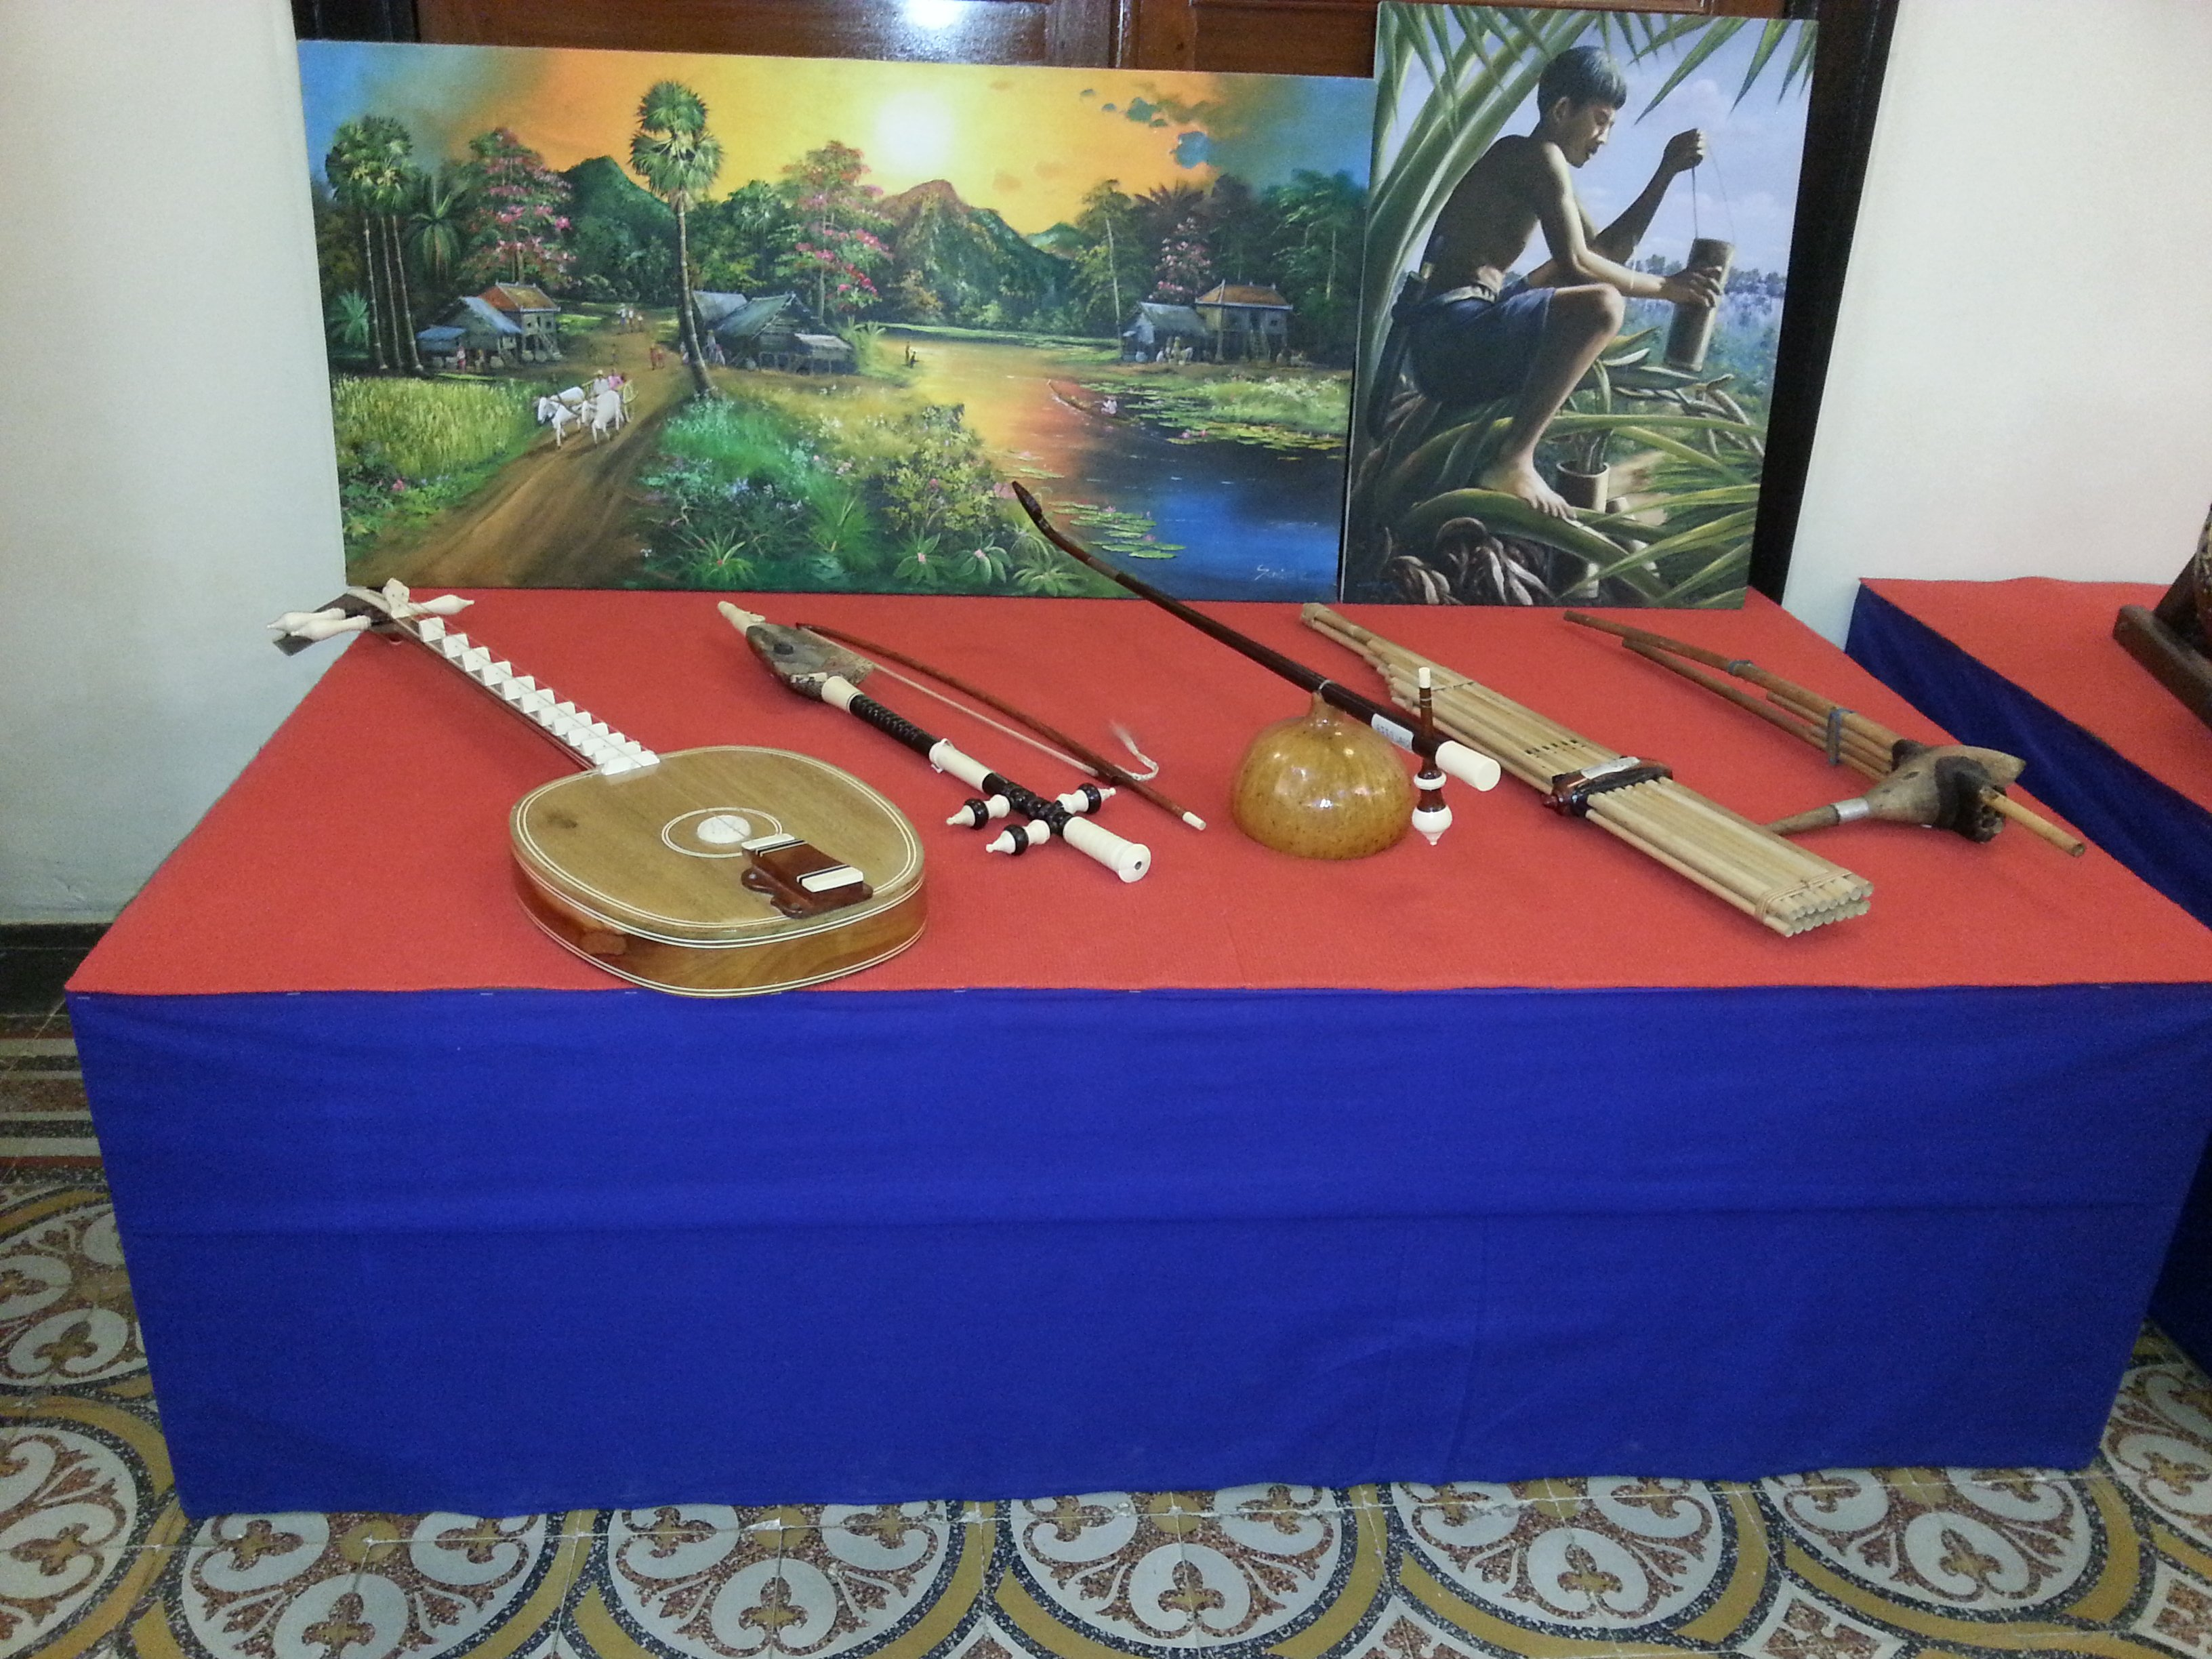 Cambodian musical instruments on display